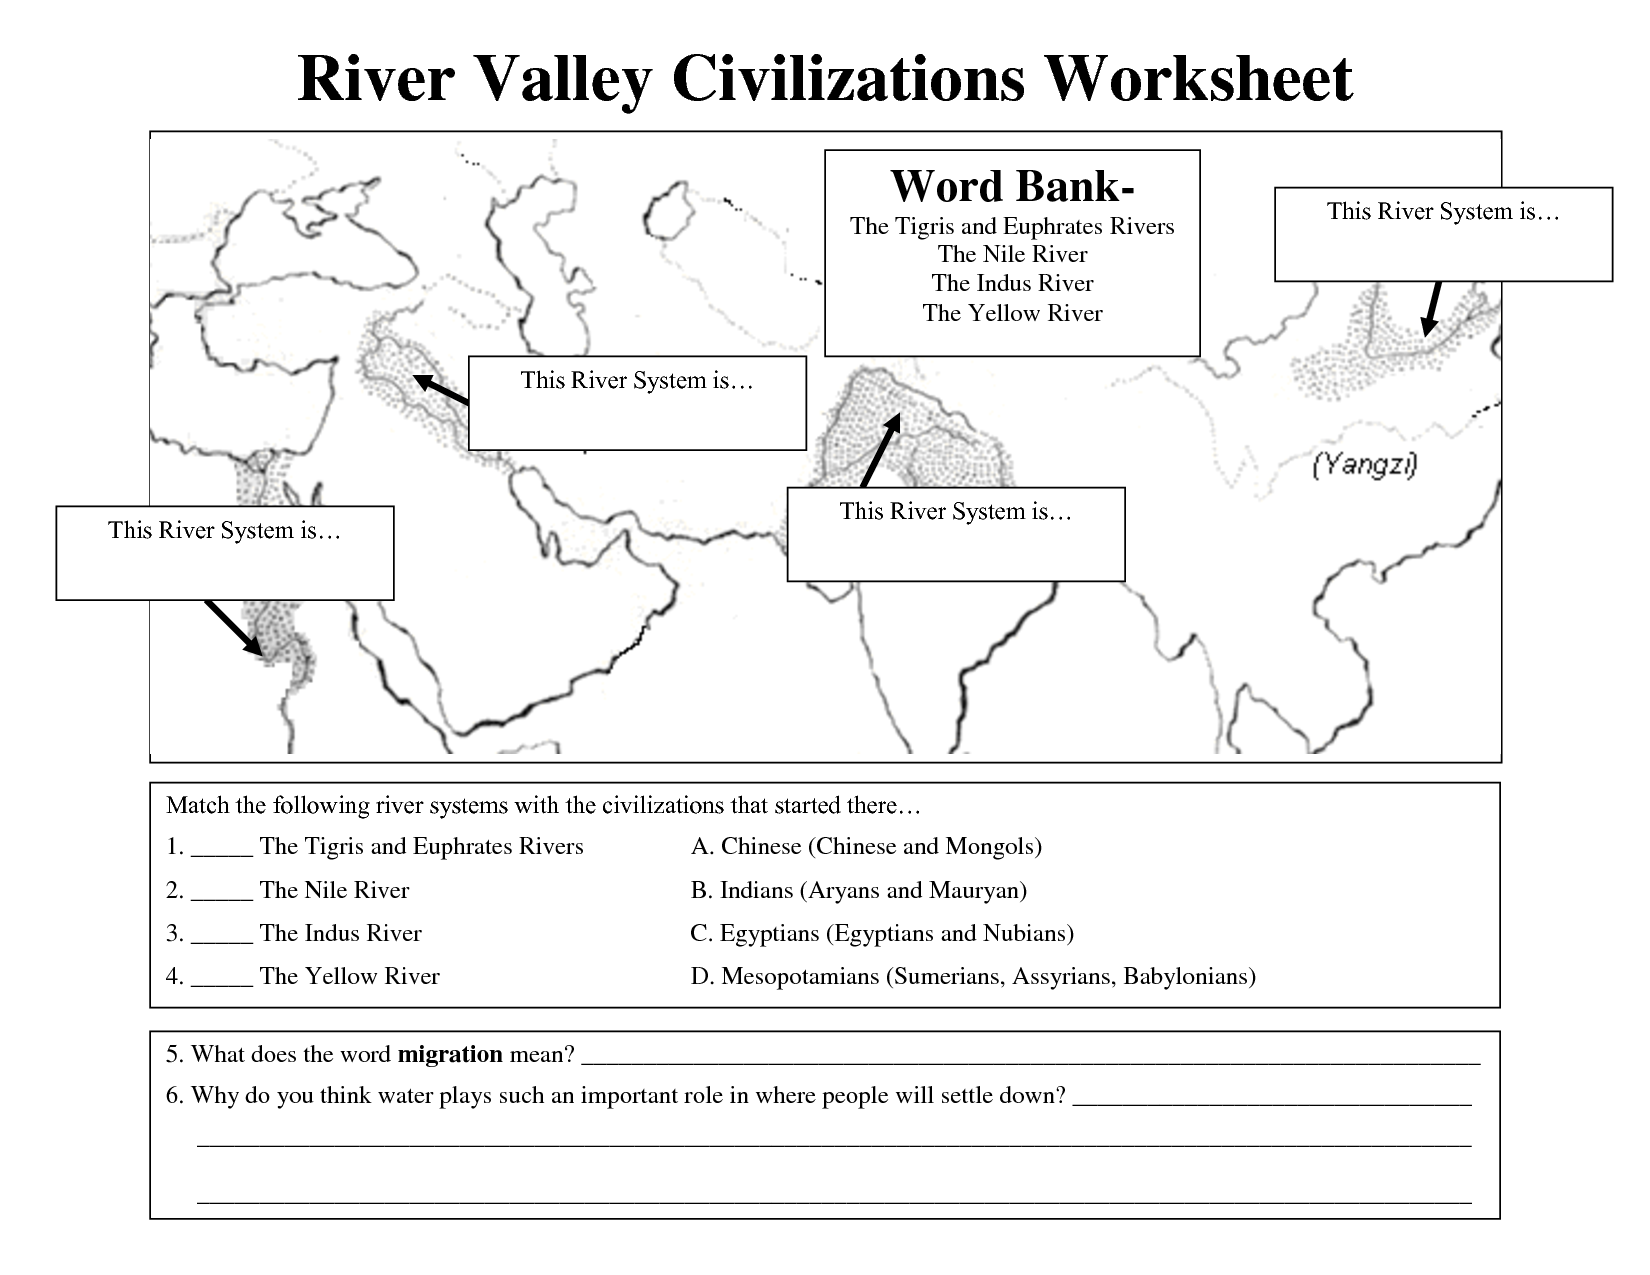 medium resolution of River Valley Civilizations Worksheet   River valley civilizations